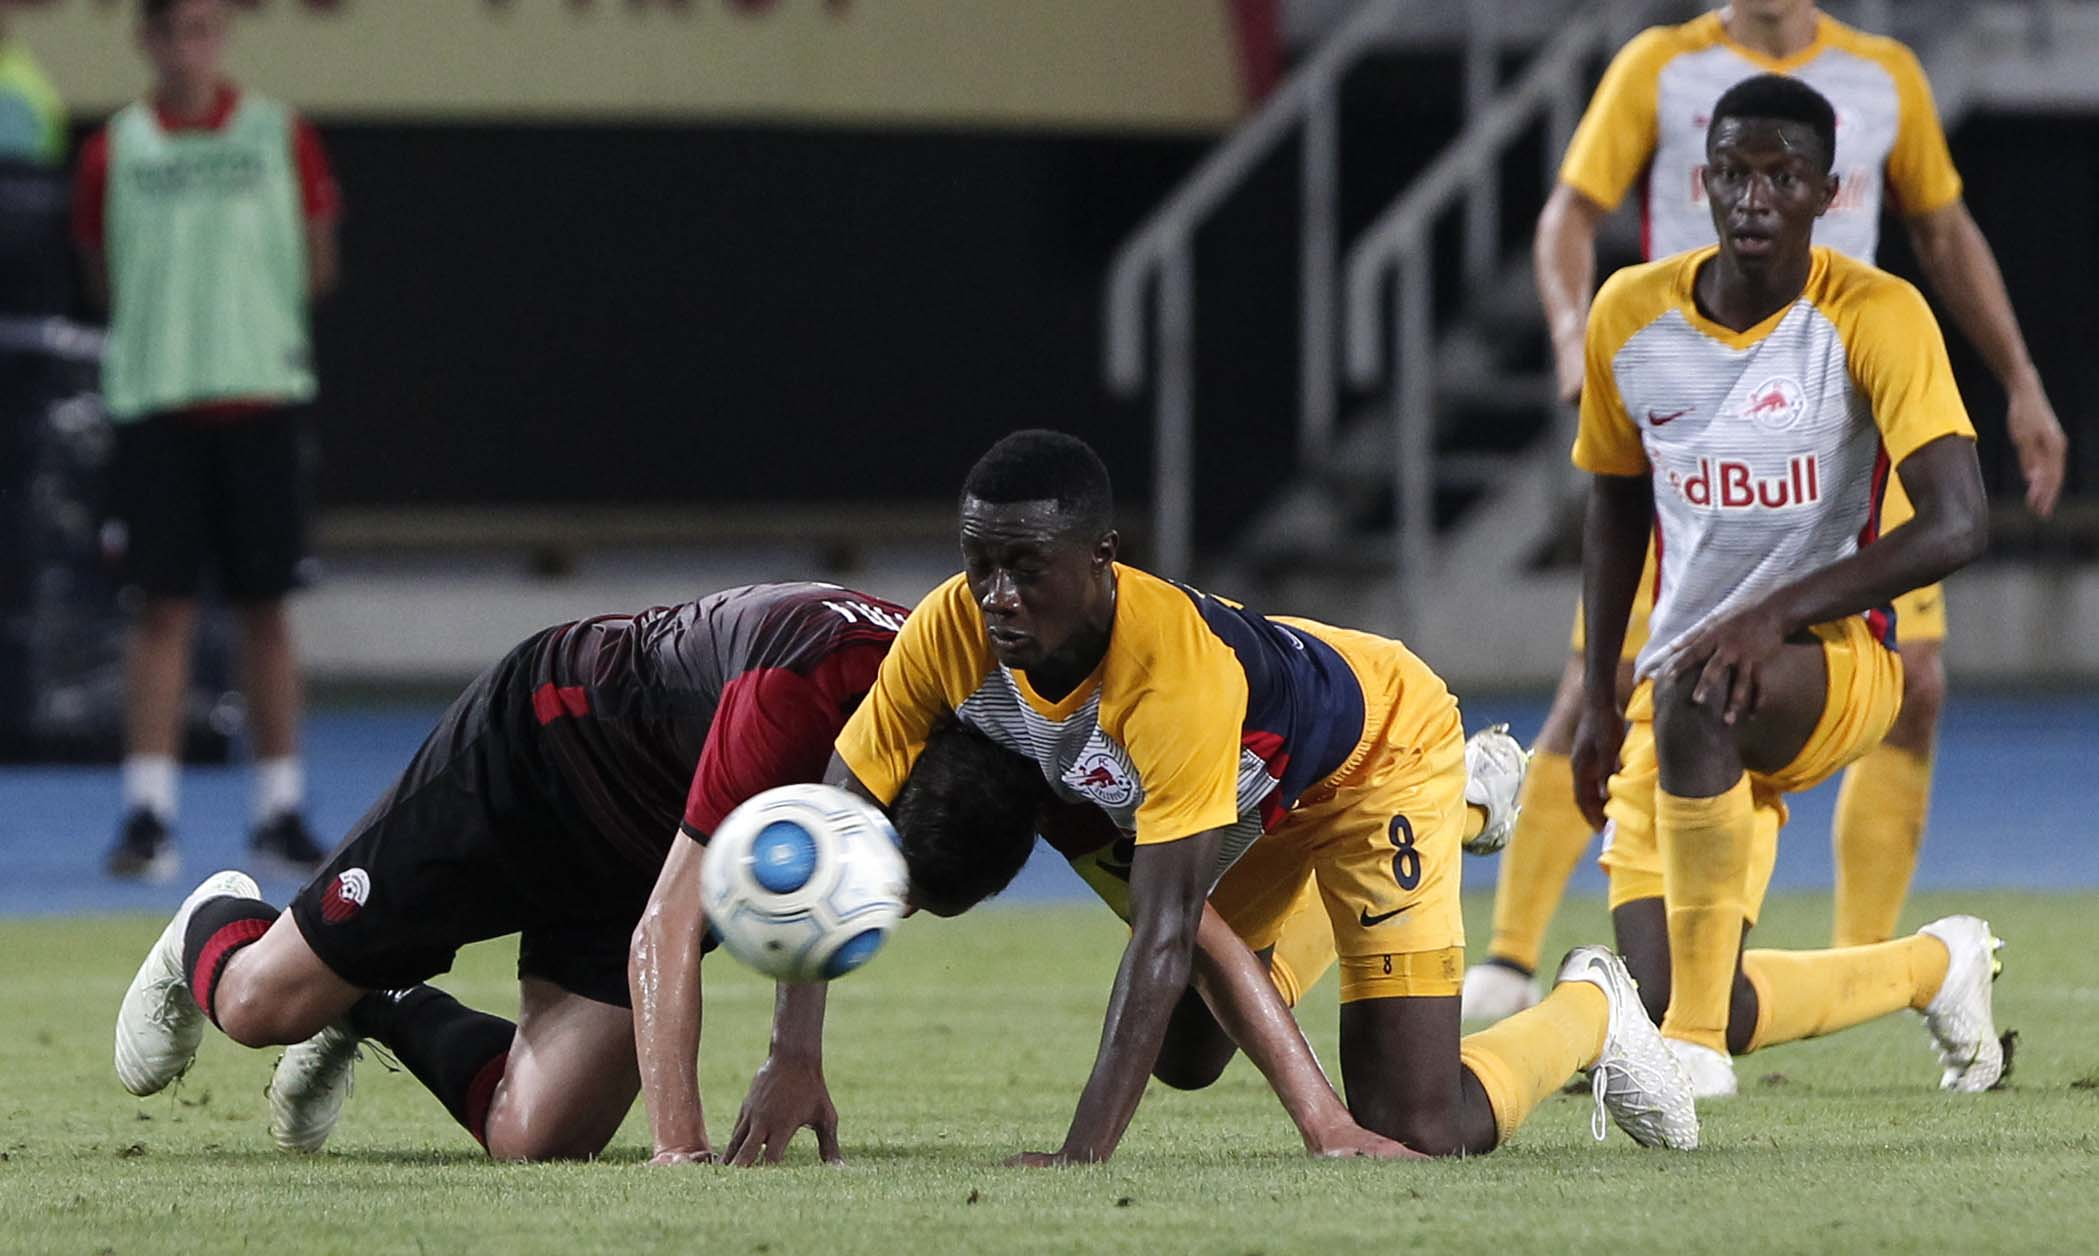 Salzburg's Diadie Samassekou (center) vies for the ball with Shkendija's Armend Alimi (left) during the Champions League third qualifying round, second leg soccer match between Shkendija and Red Bull Salzburg, at Philip II Arena in Skopje, Macedonia on Tuesday.